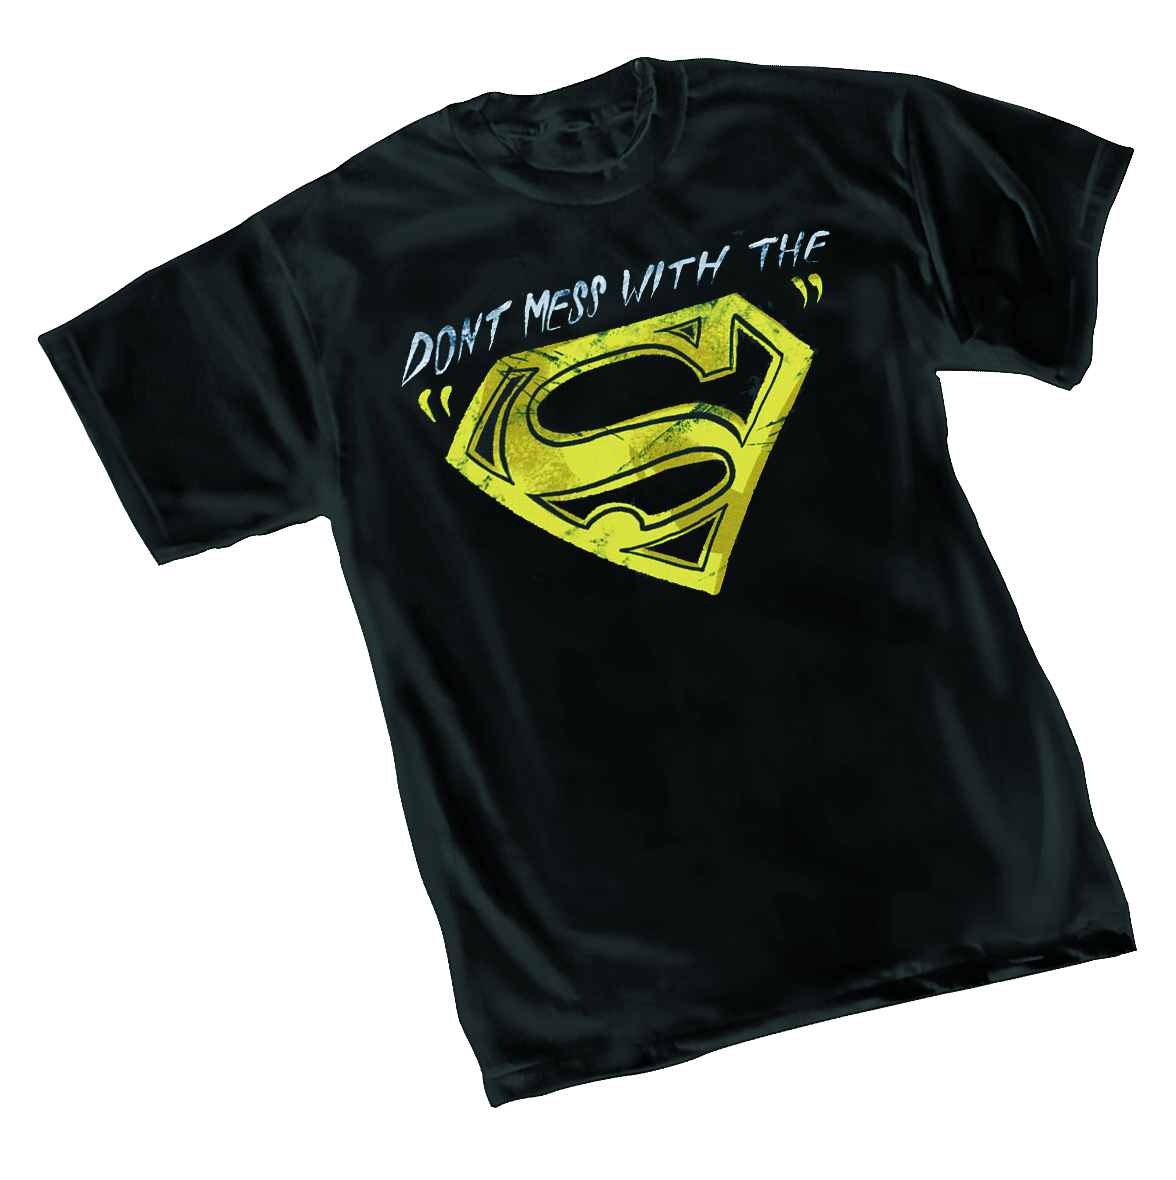 SUPERBOY DMW BY TARR T/S XXL